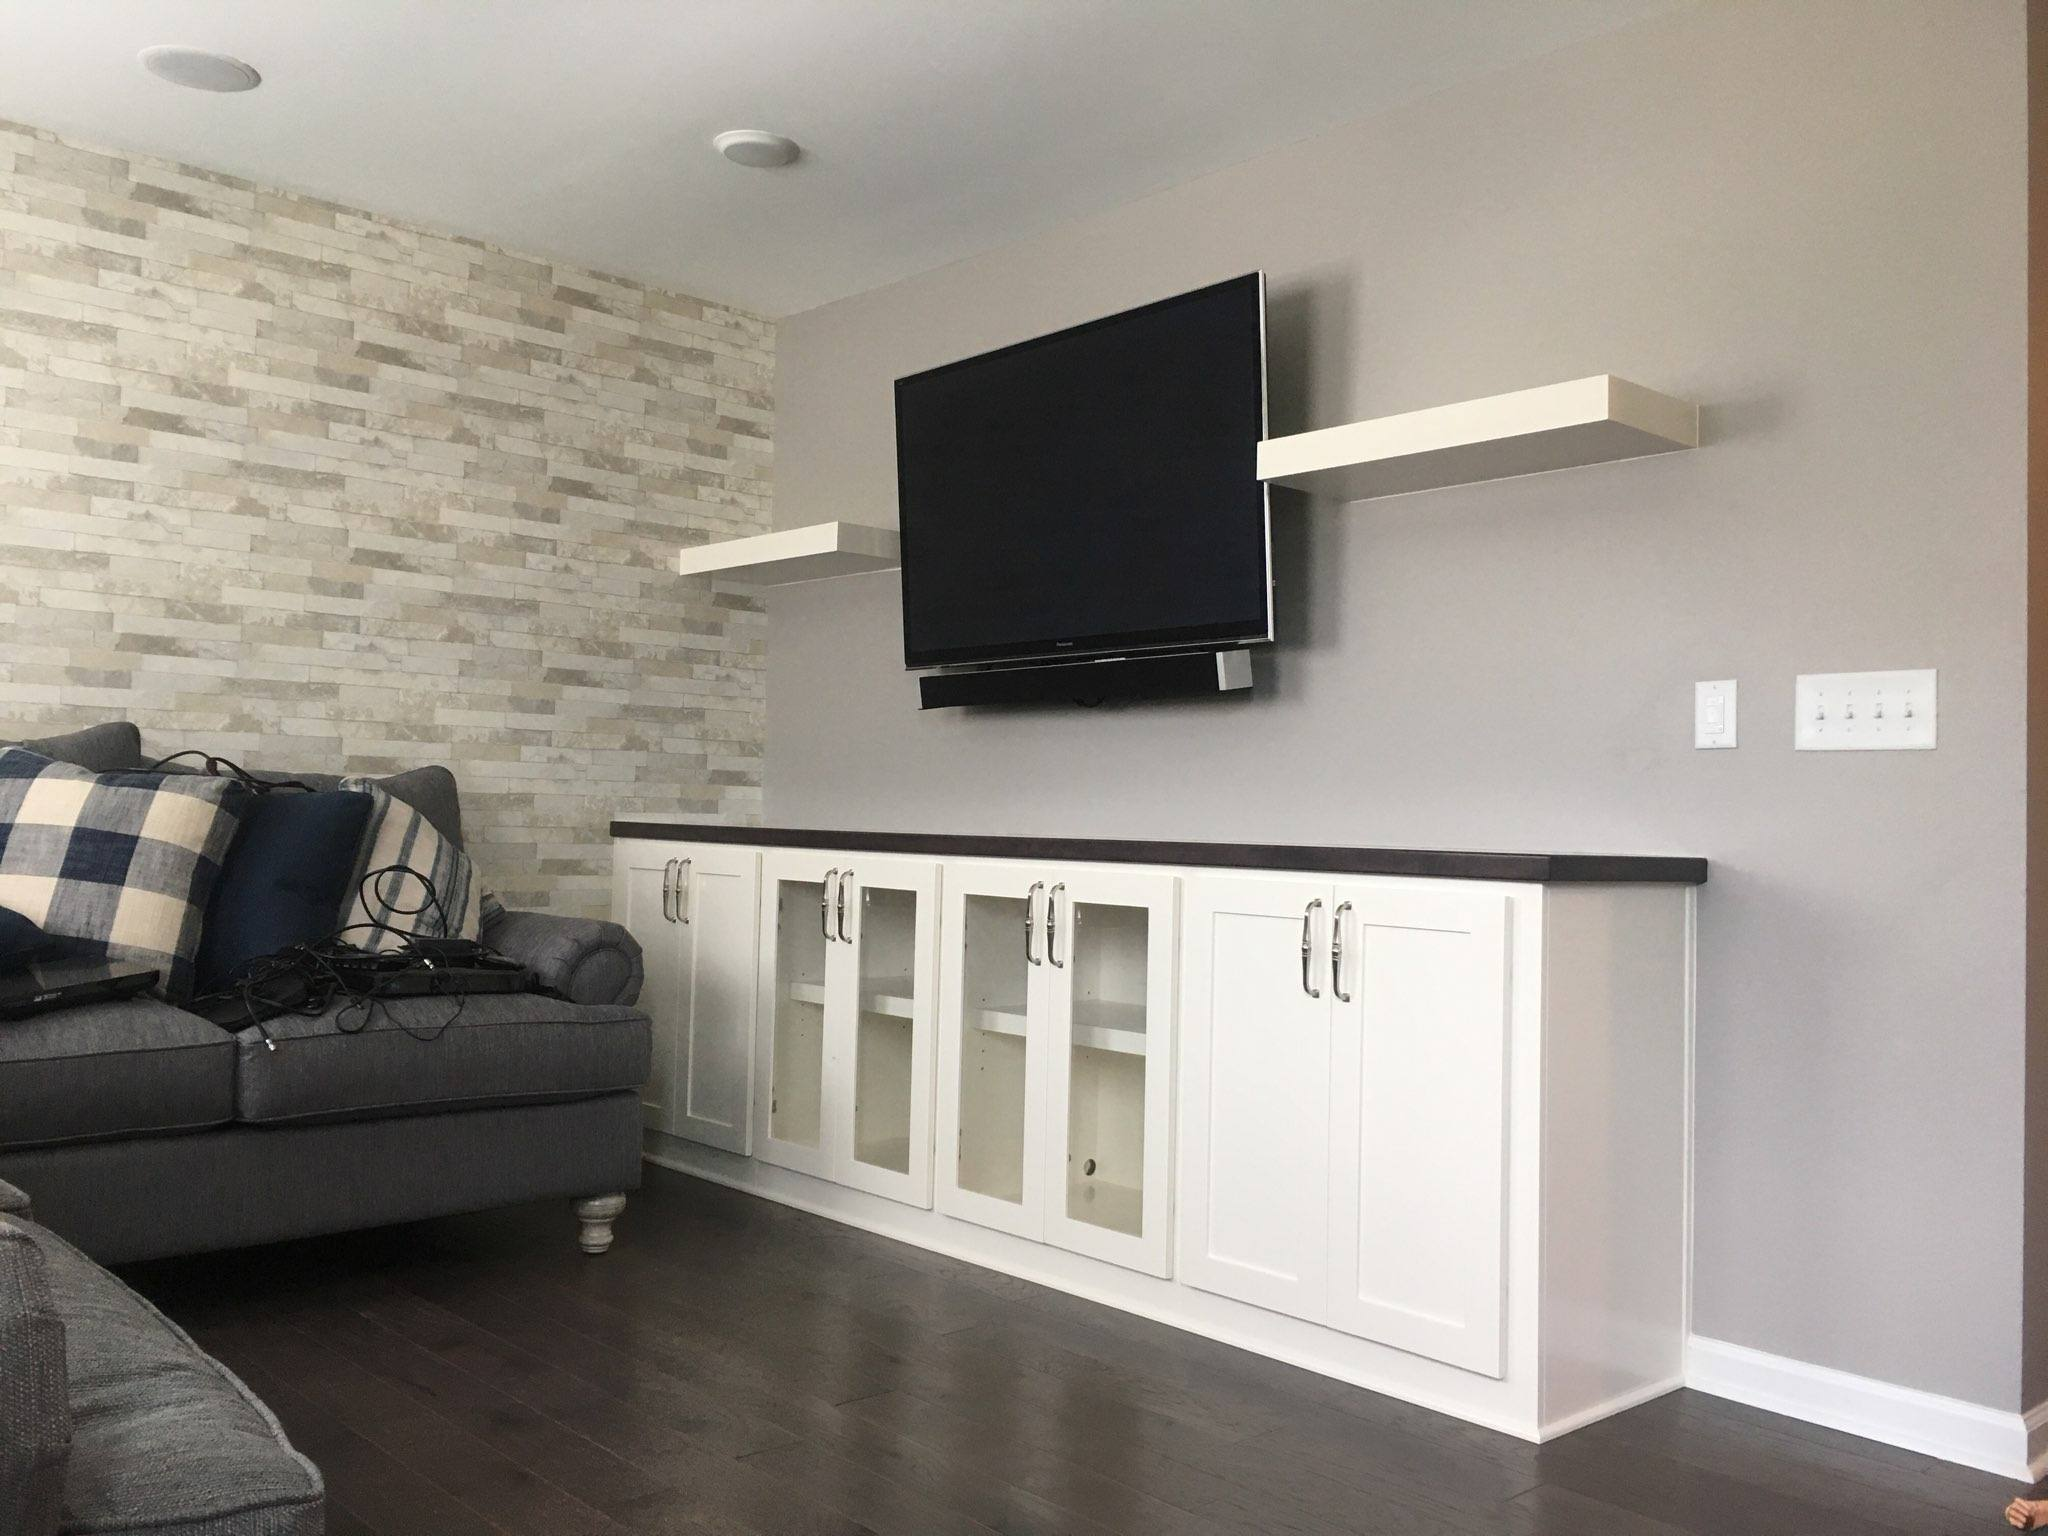 Built-In with Floating Shelves, Stain Countertop, Solid Shaker Doors, and Clear Glass Doors